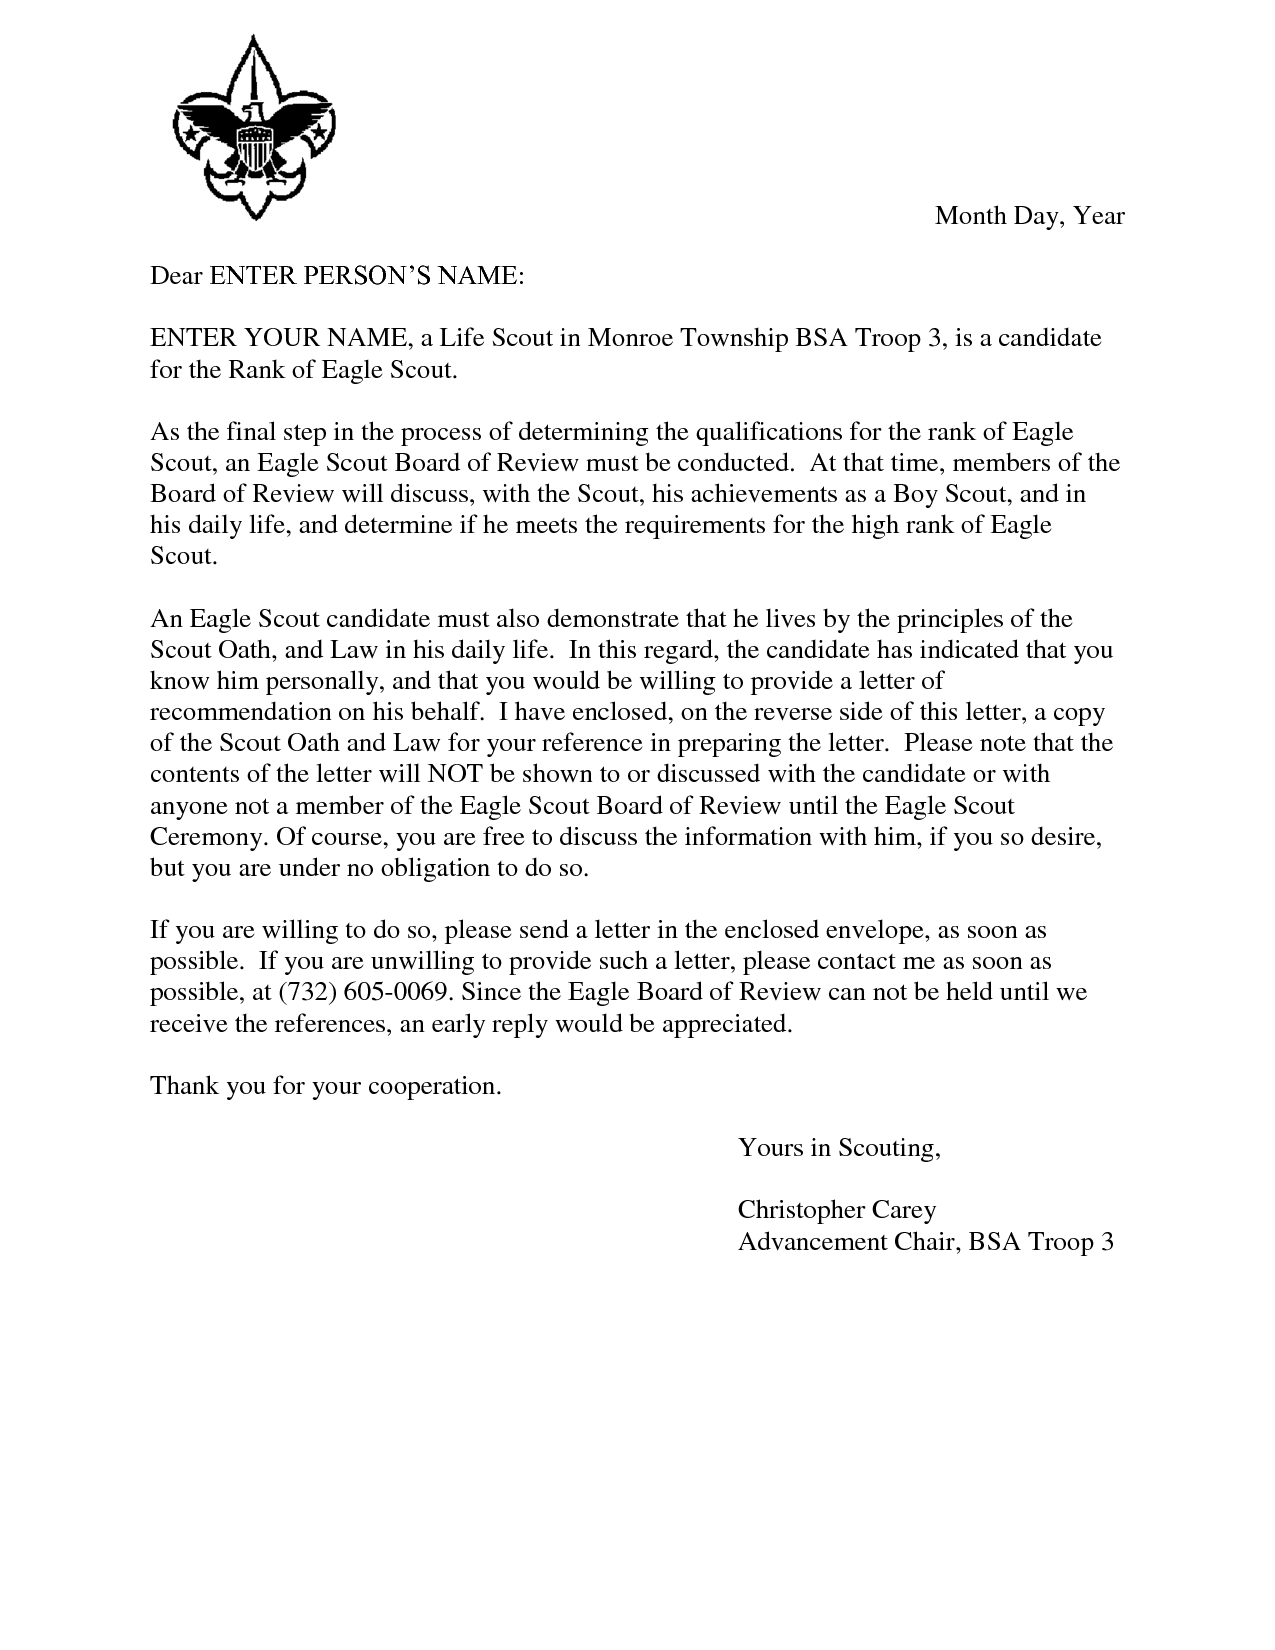 Eagle Scout Reference Request Sample Letter Doc  By HfrQ